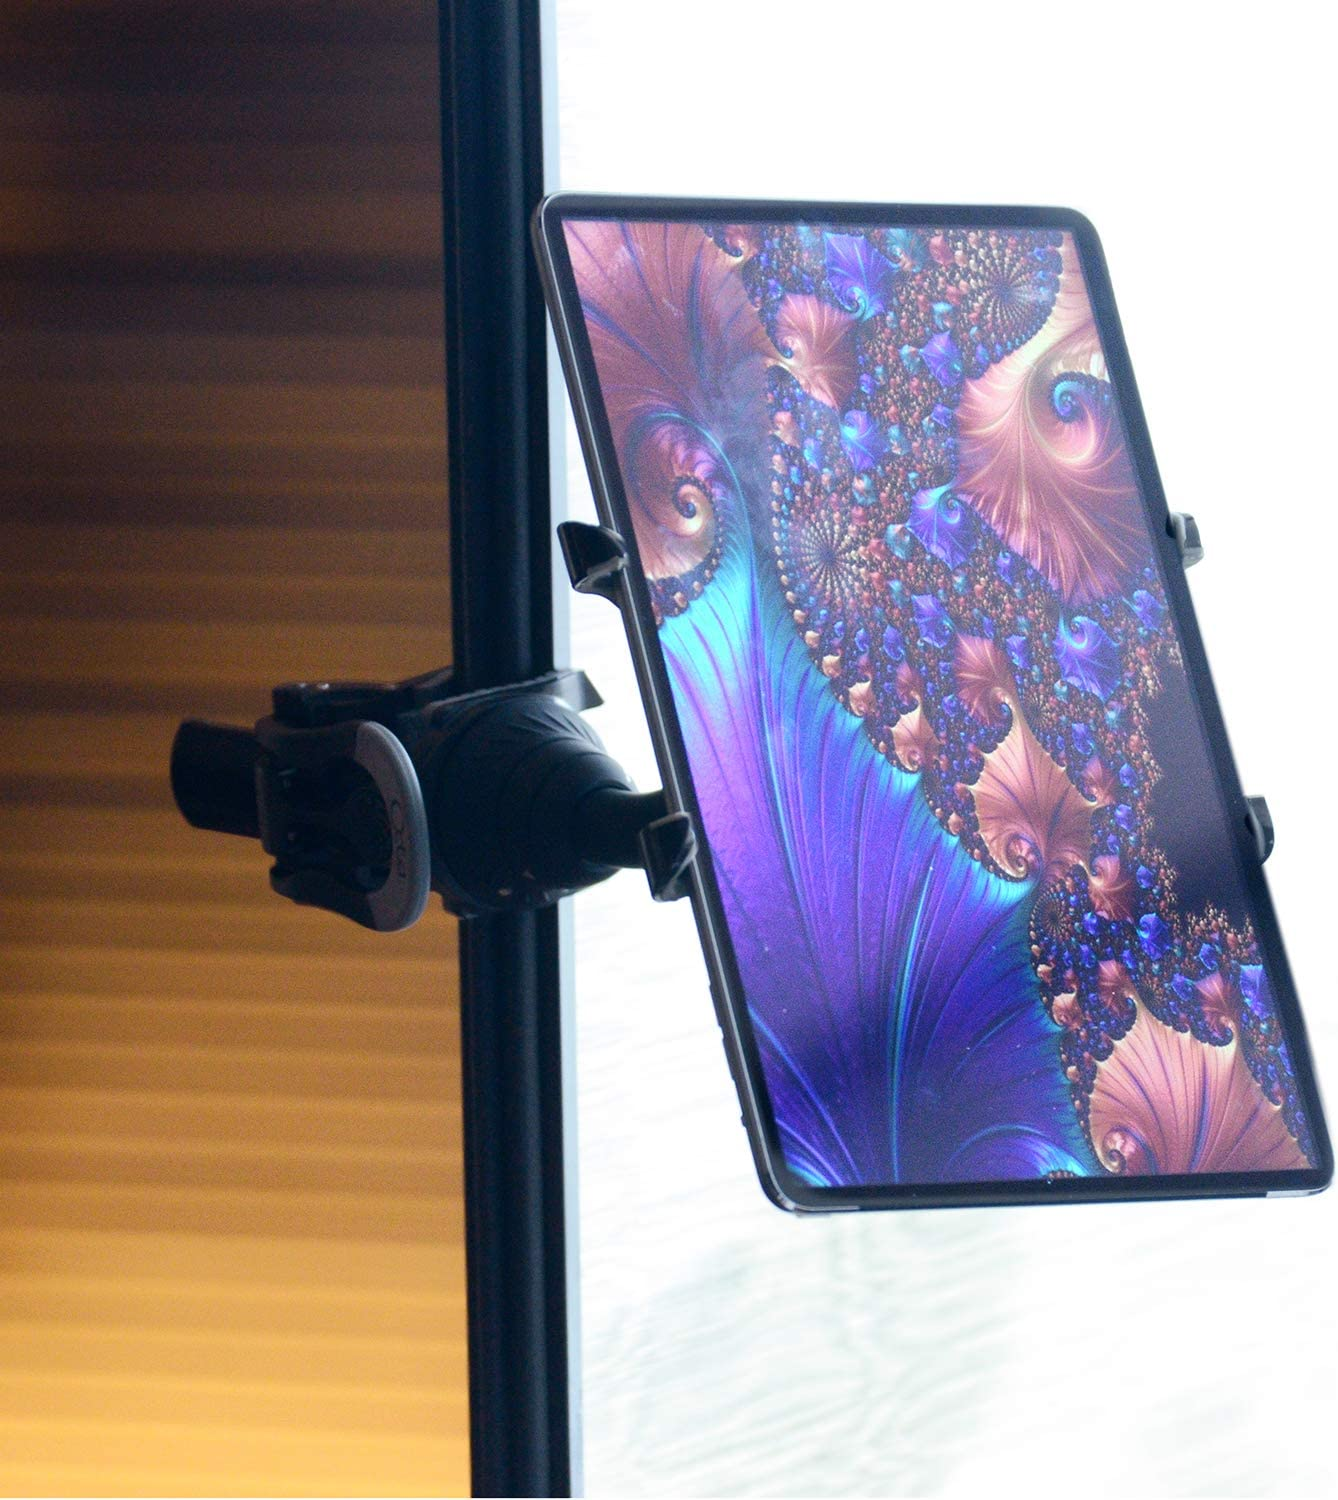 OCTA Lynx - Tablet Mount for iPad, Galaxy, Surface and More